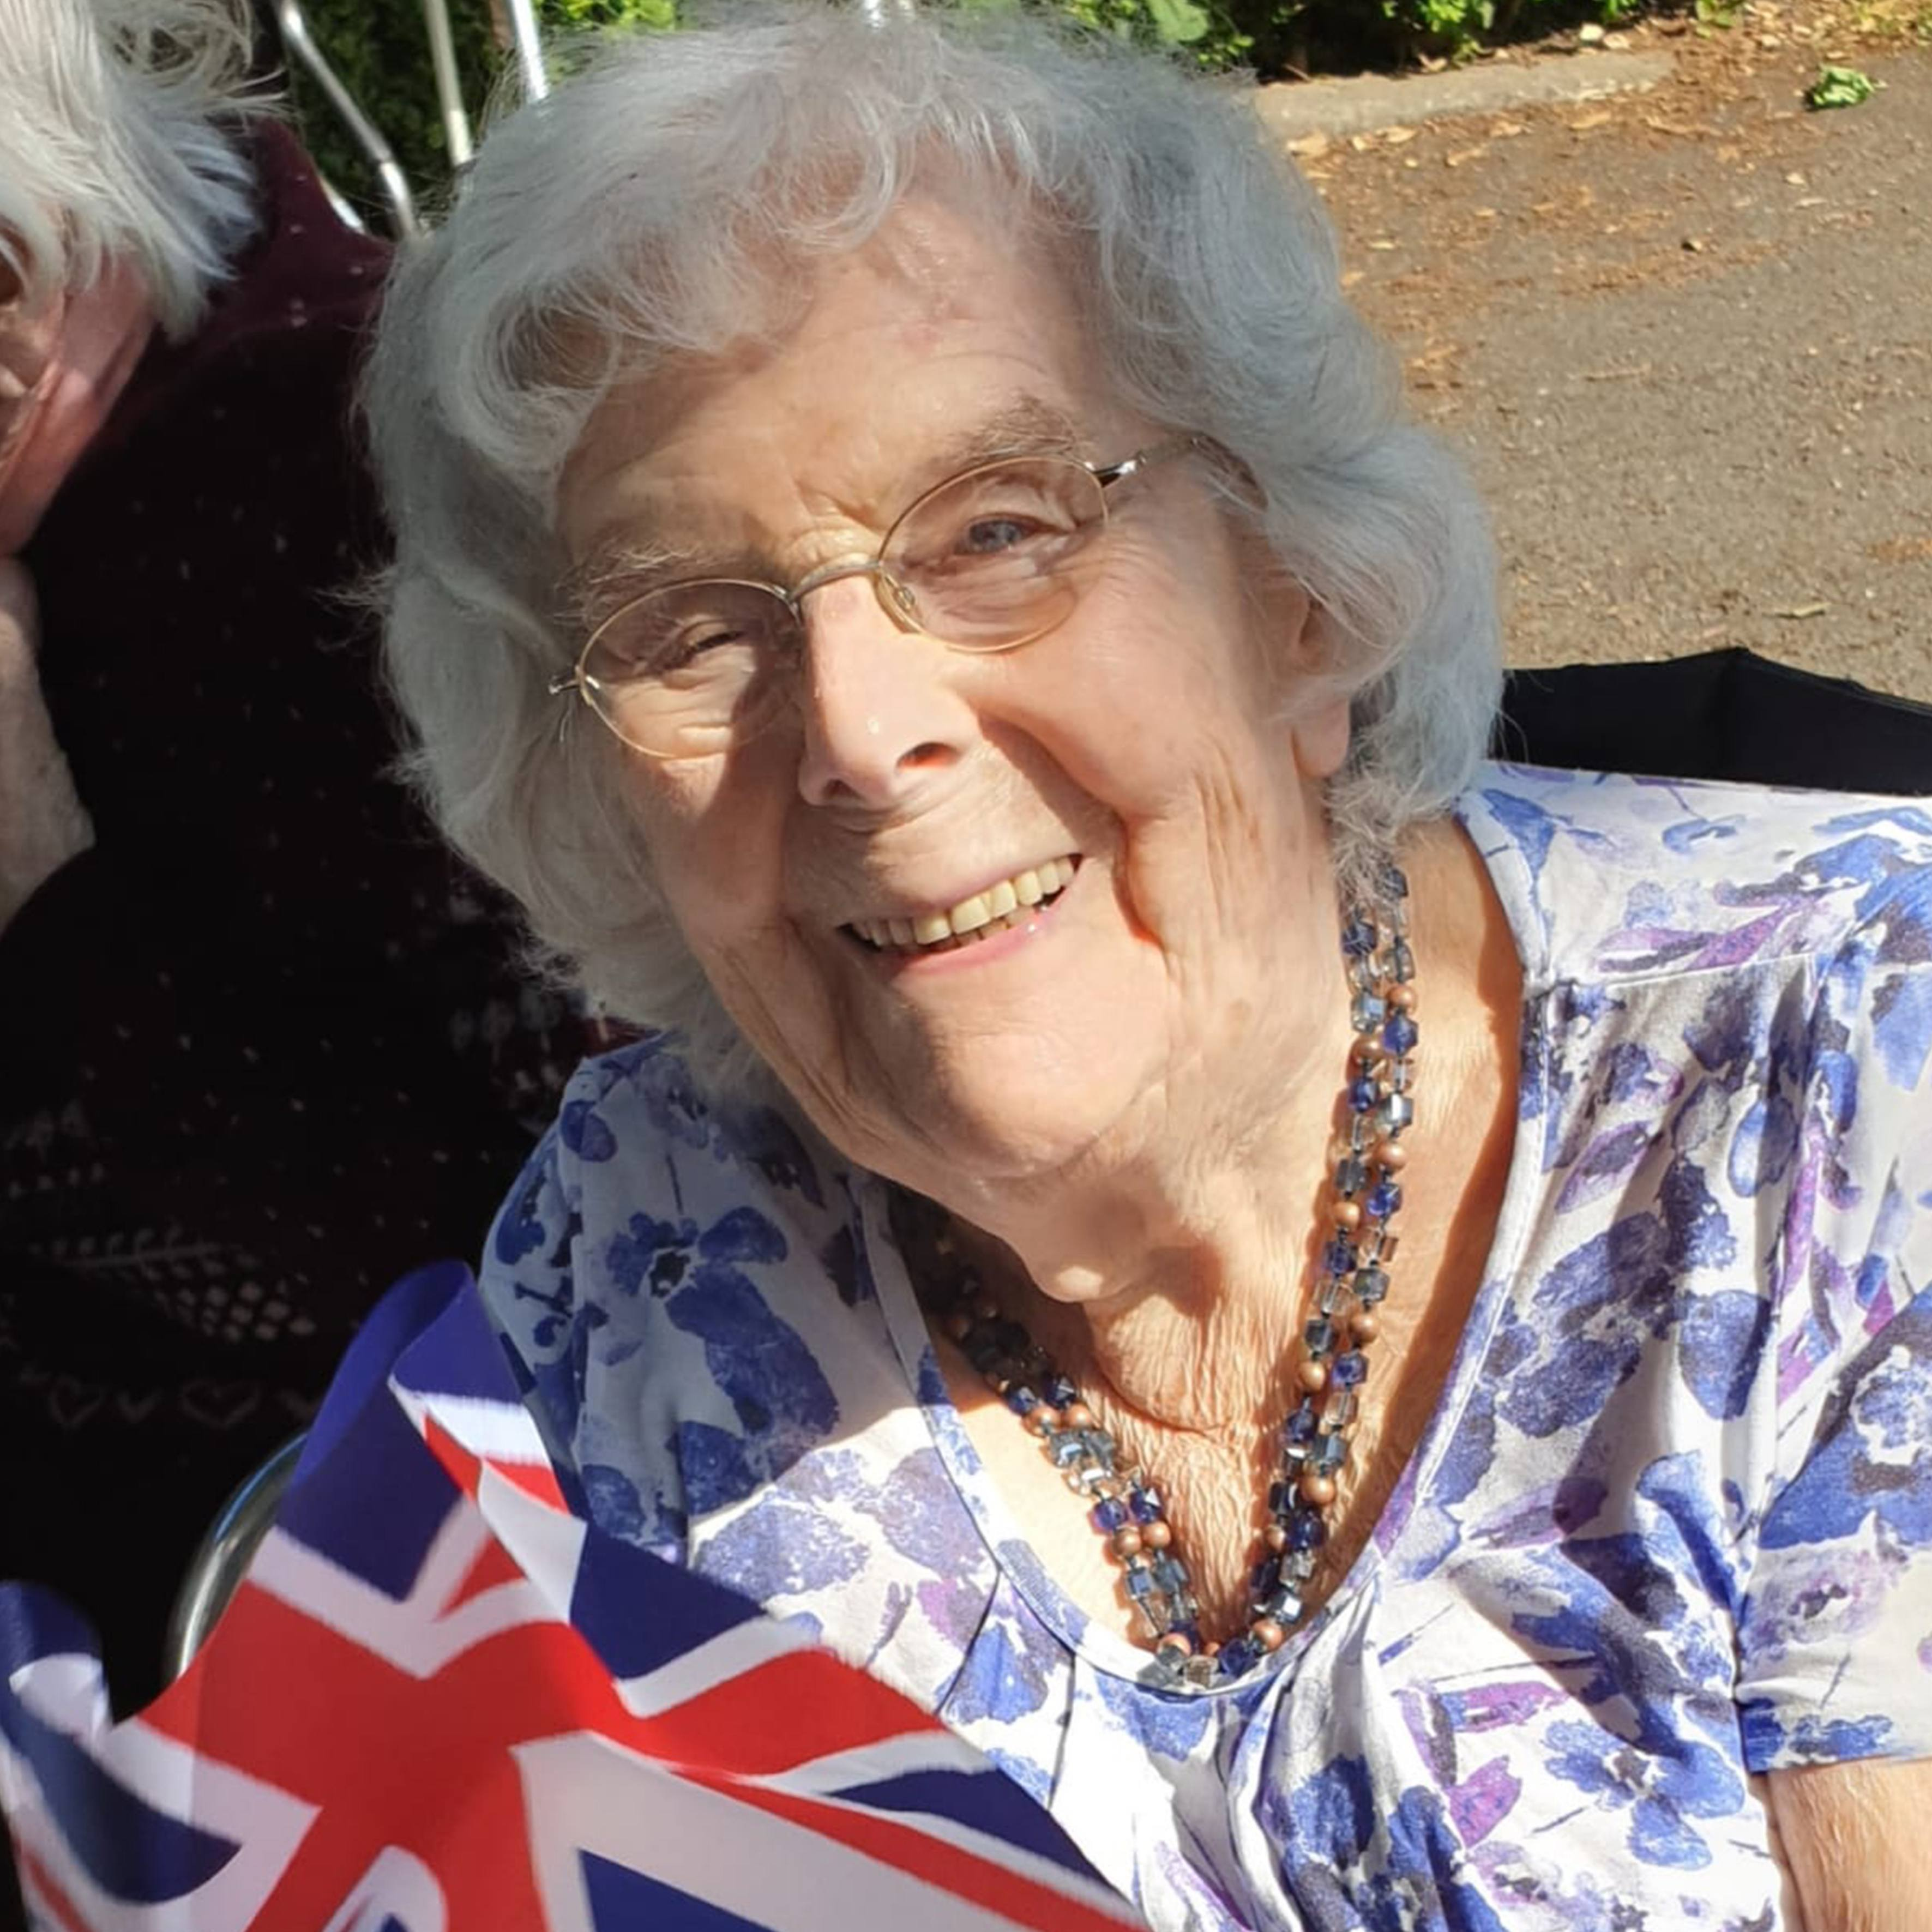 Celebrating VE Day 75 years on